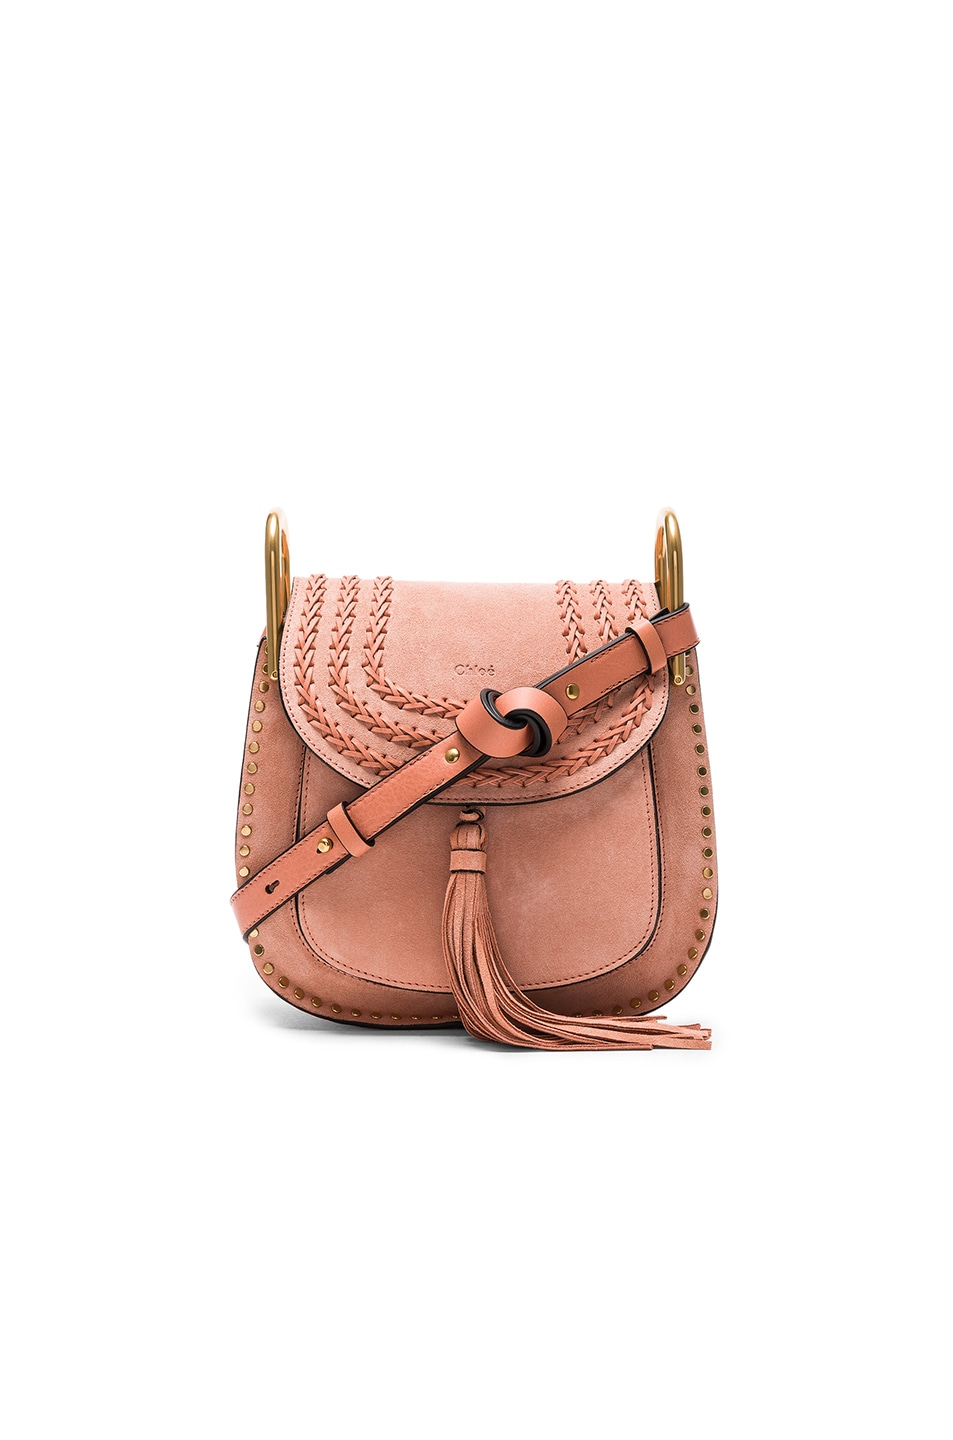 d4a62e2a4ef66 Image 1 of Chloe Small Suede Hudson Bag in Sheer Pink